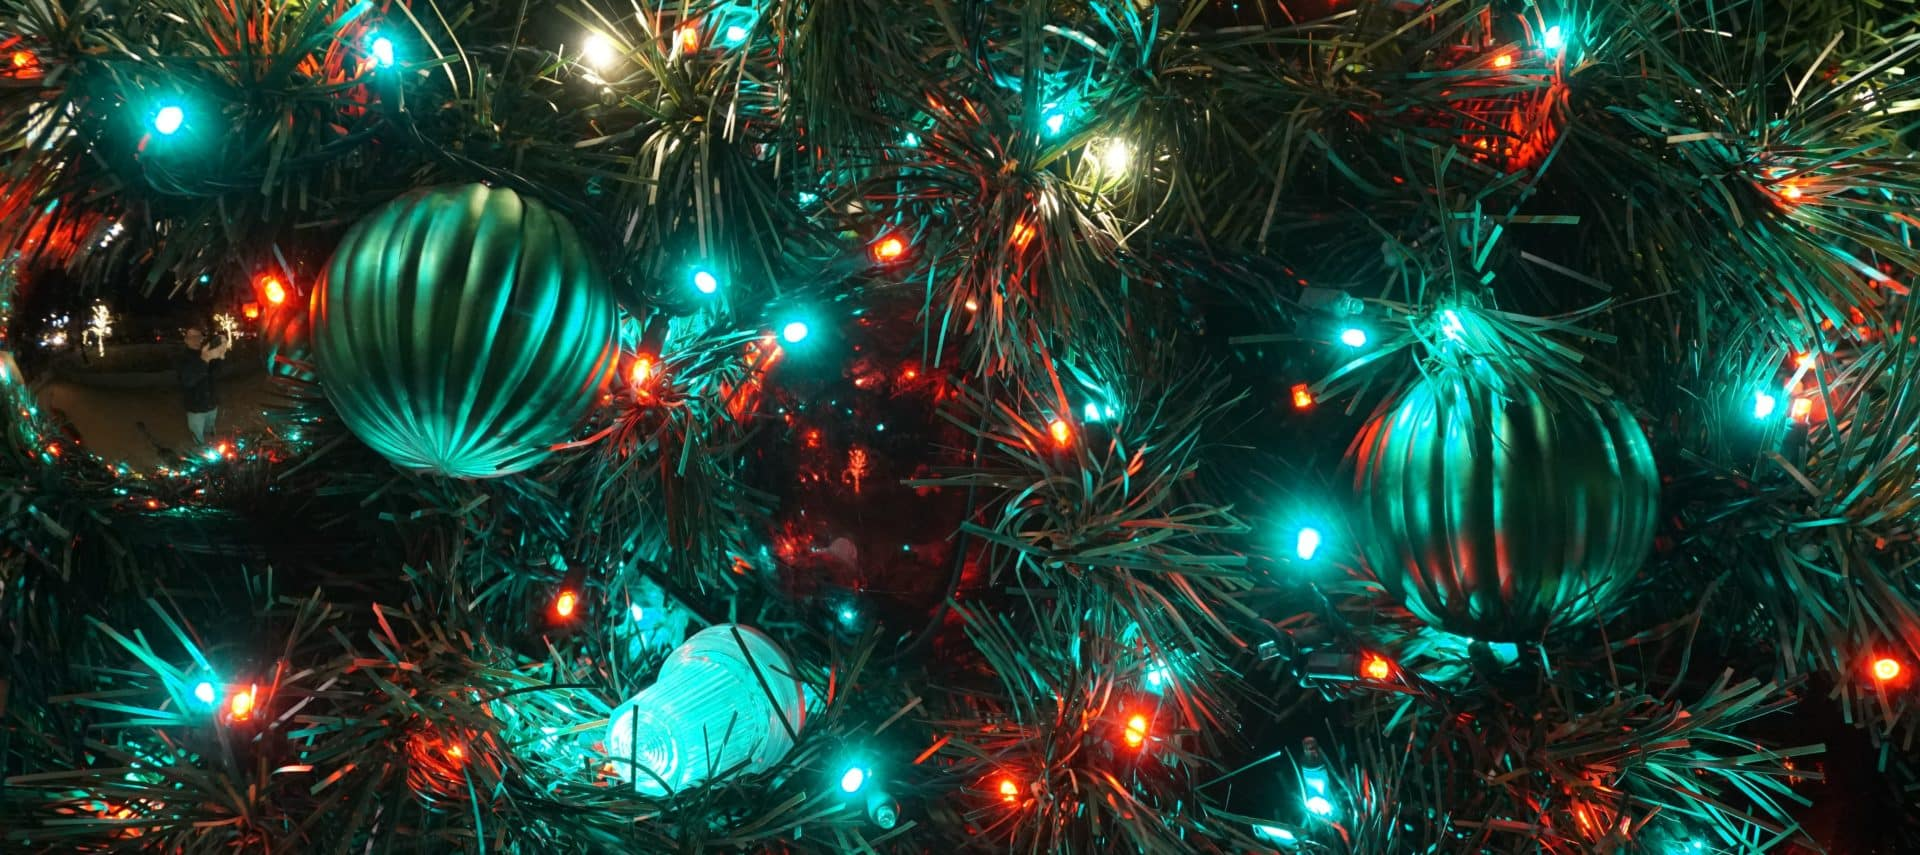 Close-up view of a green christmas tree covered in red, green and white twinkling lights